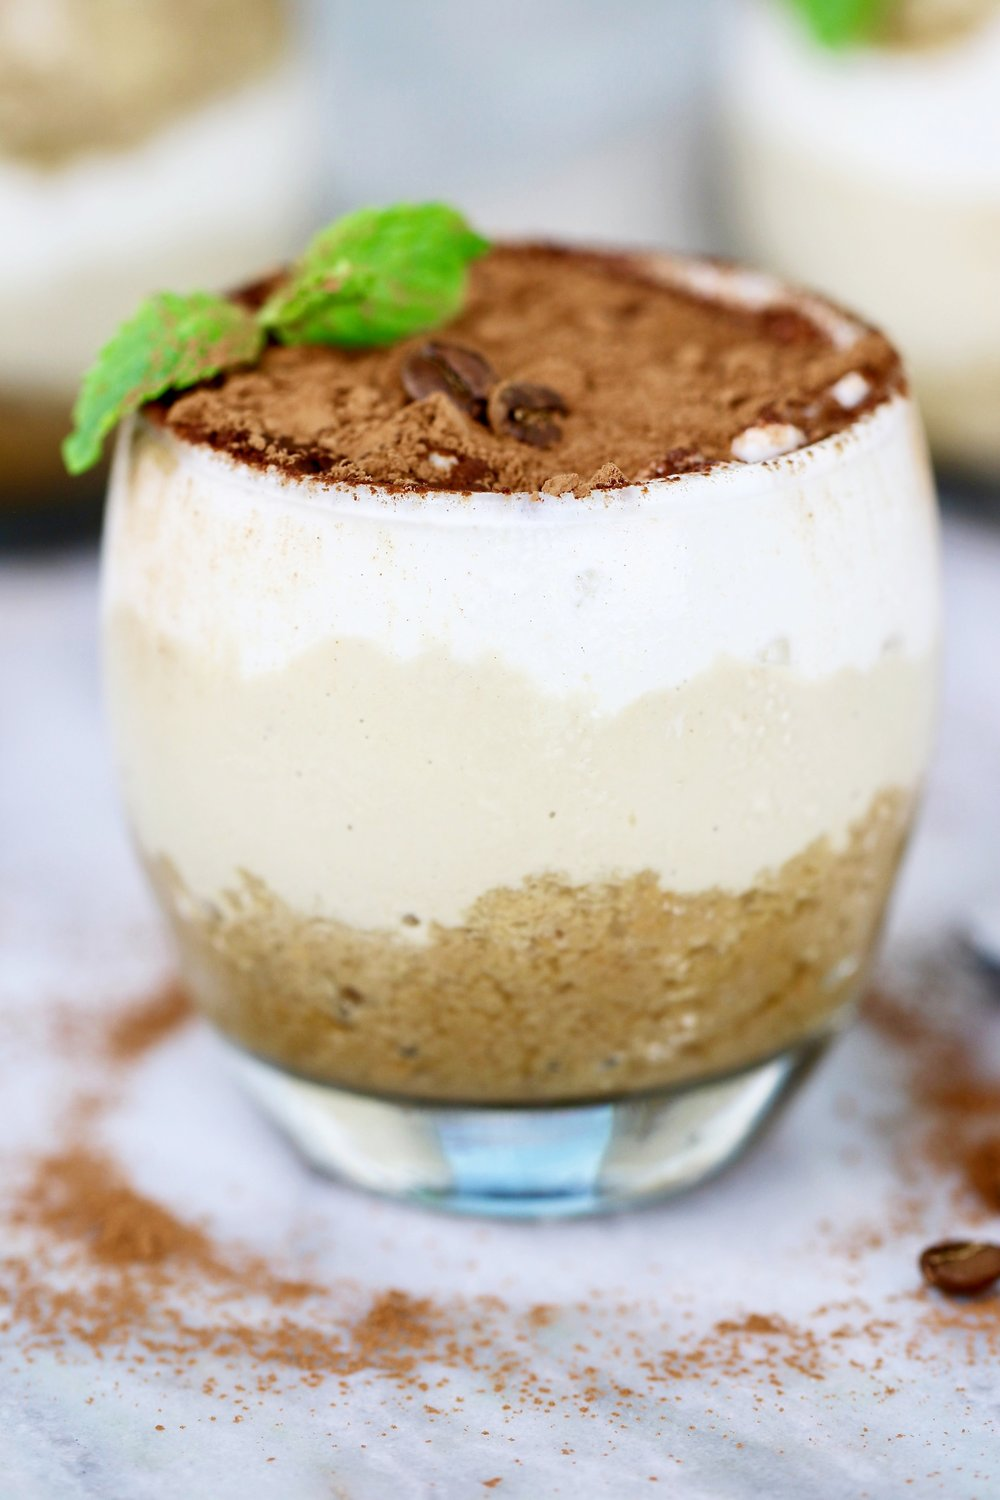 - Just as good as the real thing, this succulent vegan, gluten-free, and paleo-friendly tiramisu makes 5-6 servings.